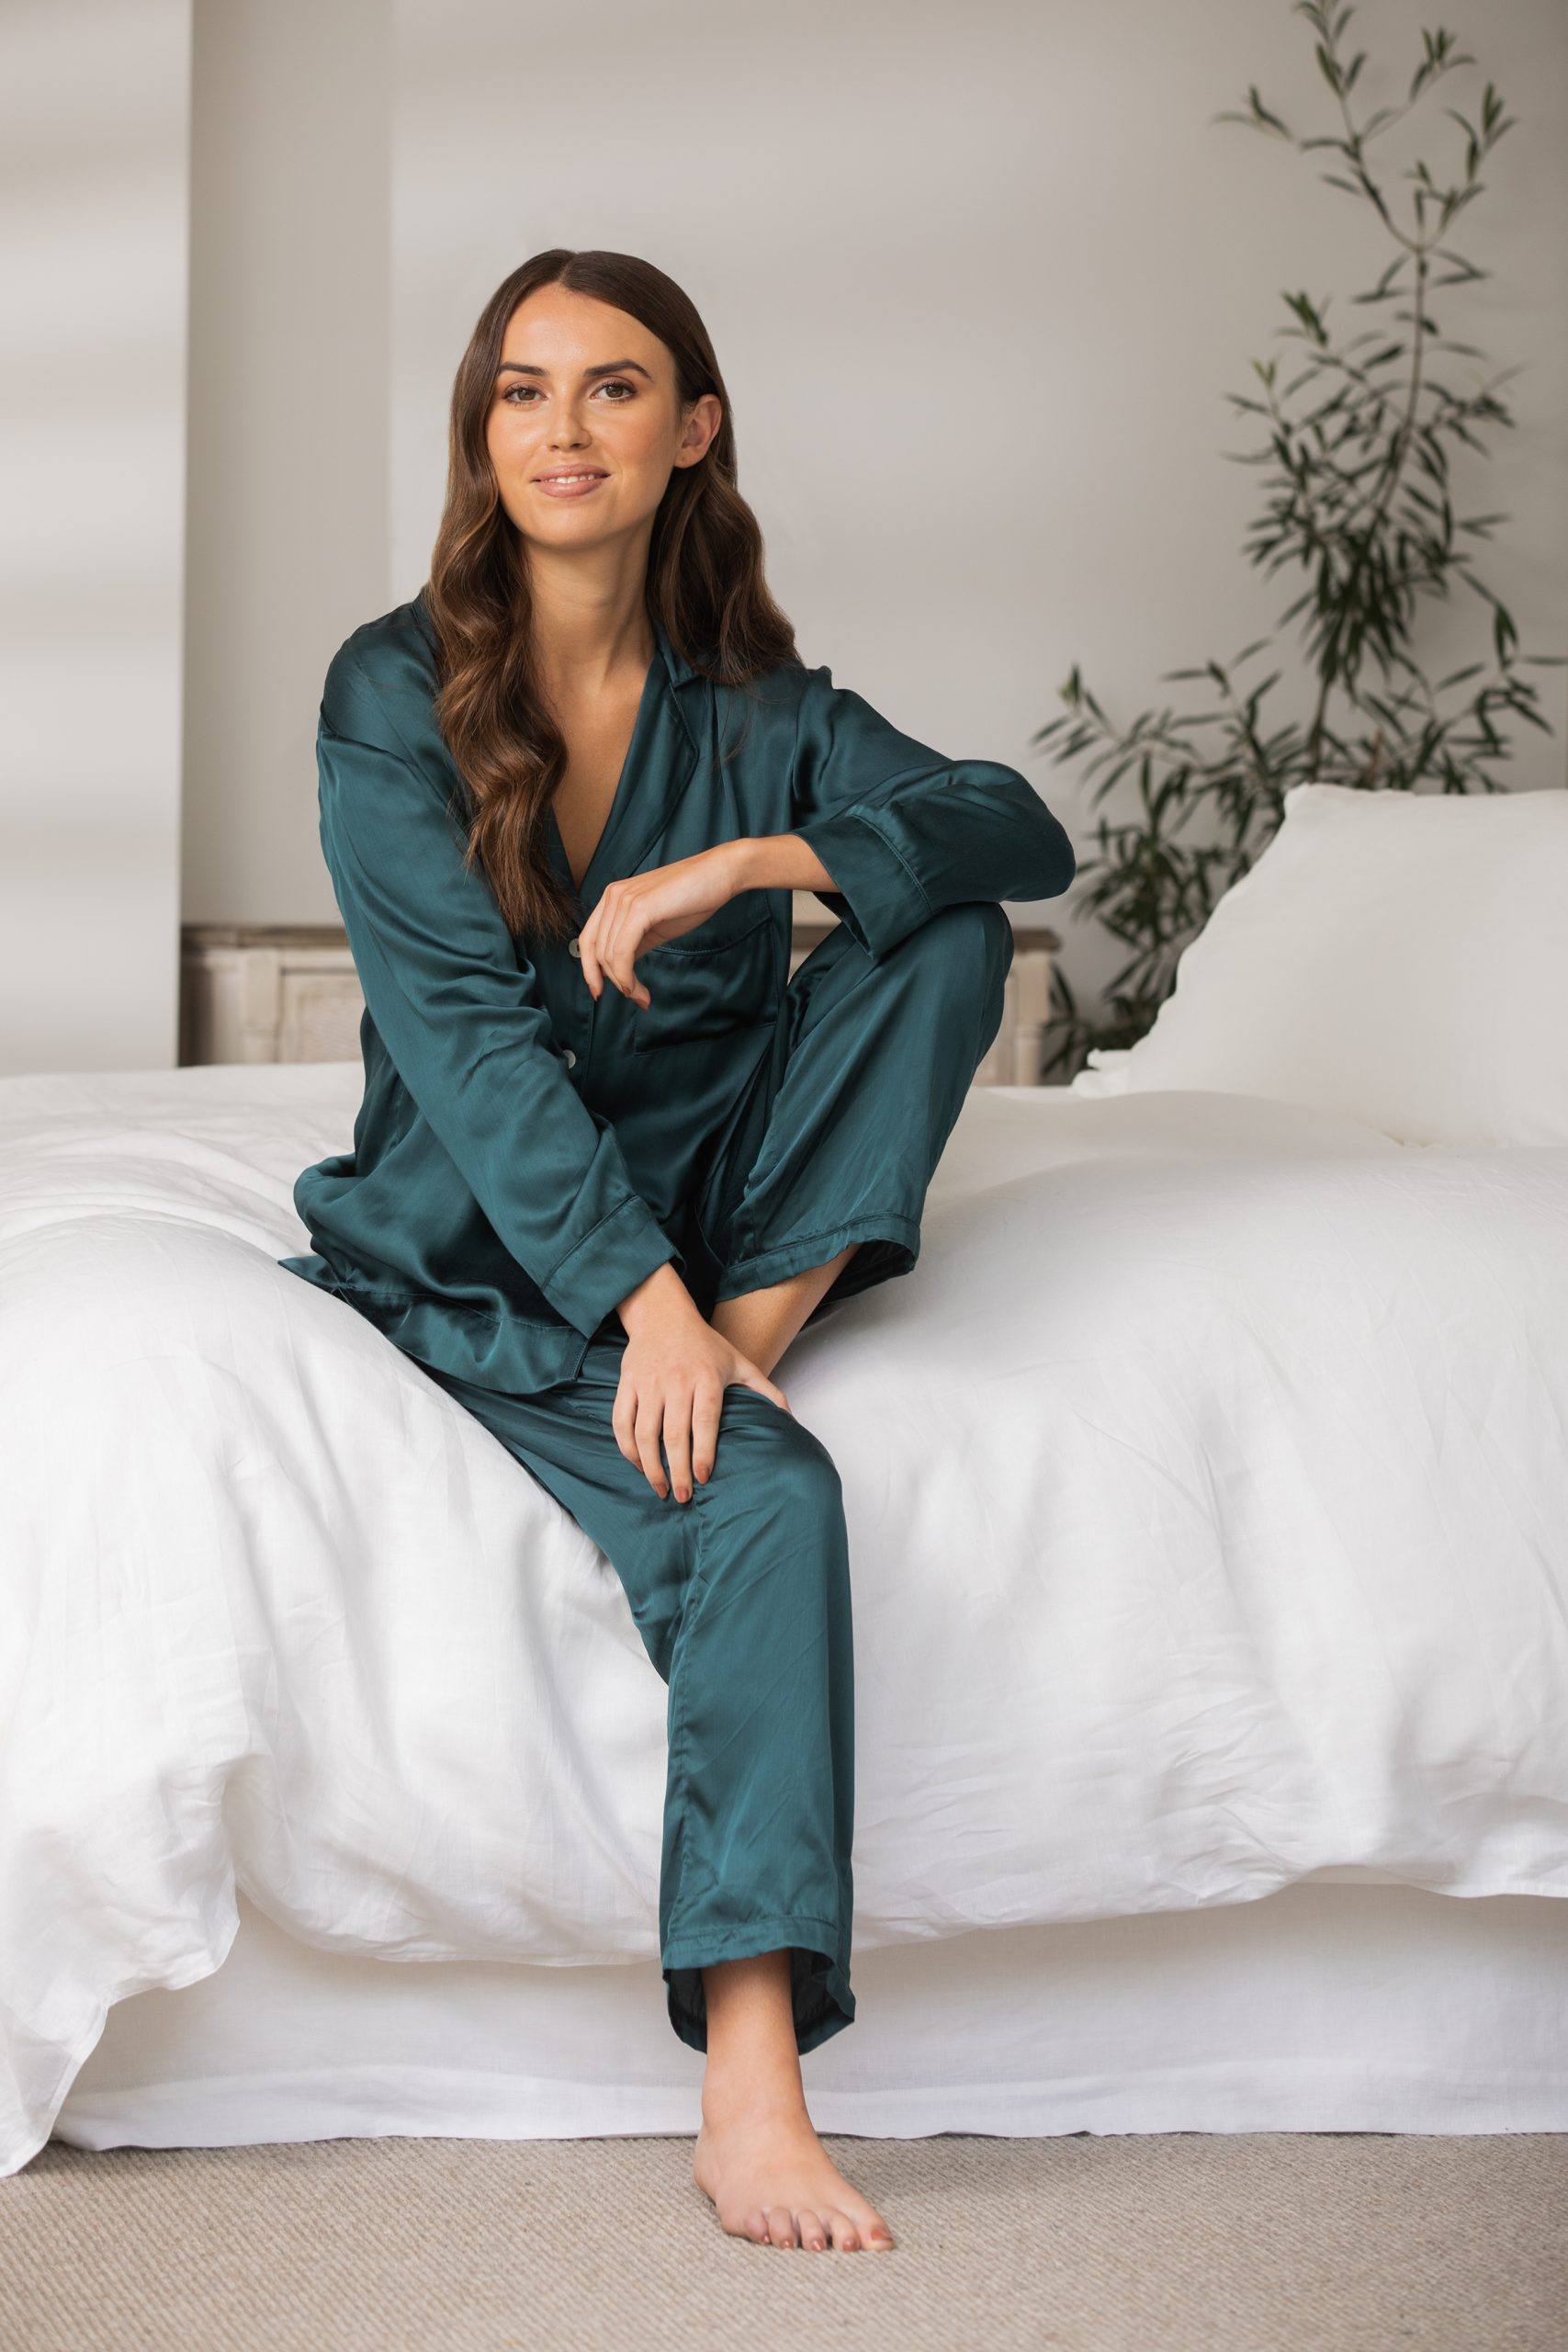 Wallace Cotton Mother of Pearl PJ Shirt $79.90 PJ Pants 3 $79.90